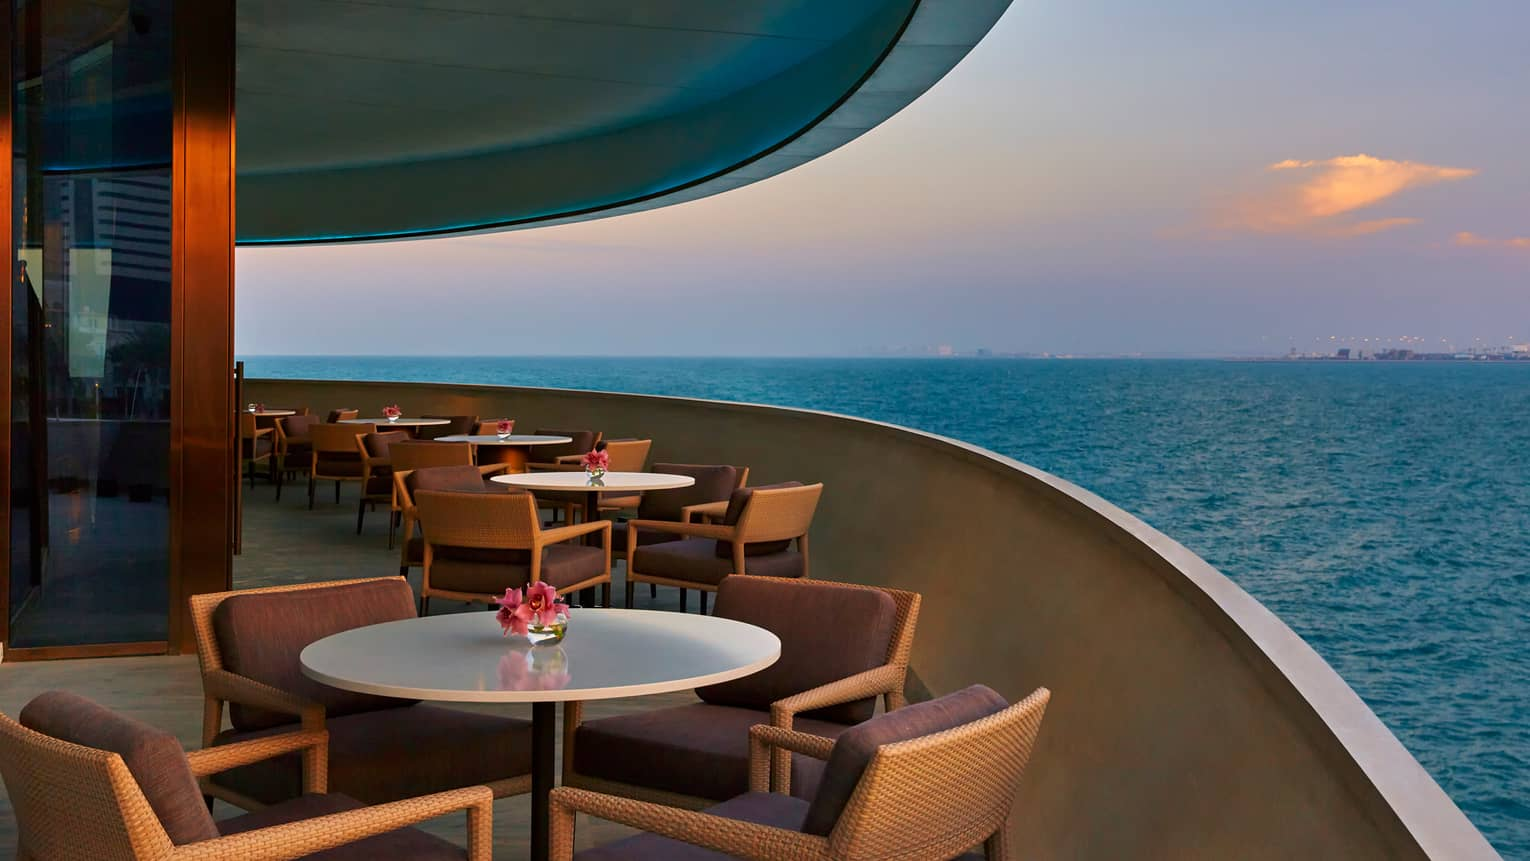 Dining tables on curved patio of Noby Restaurant, overlooking blue sea